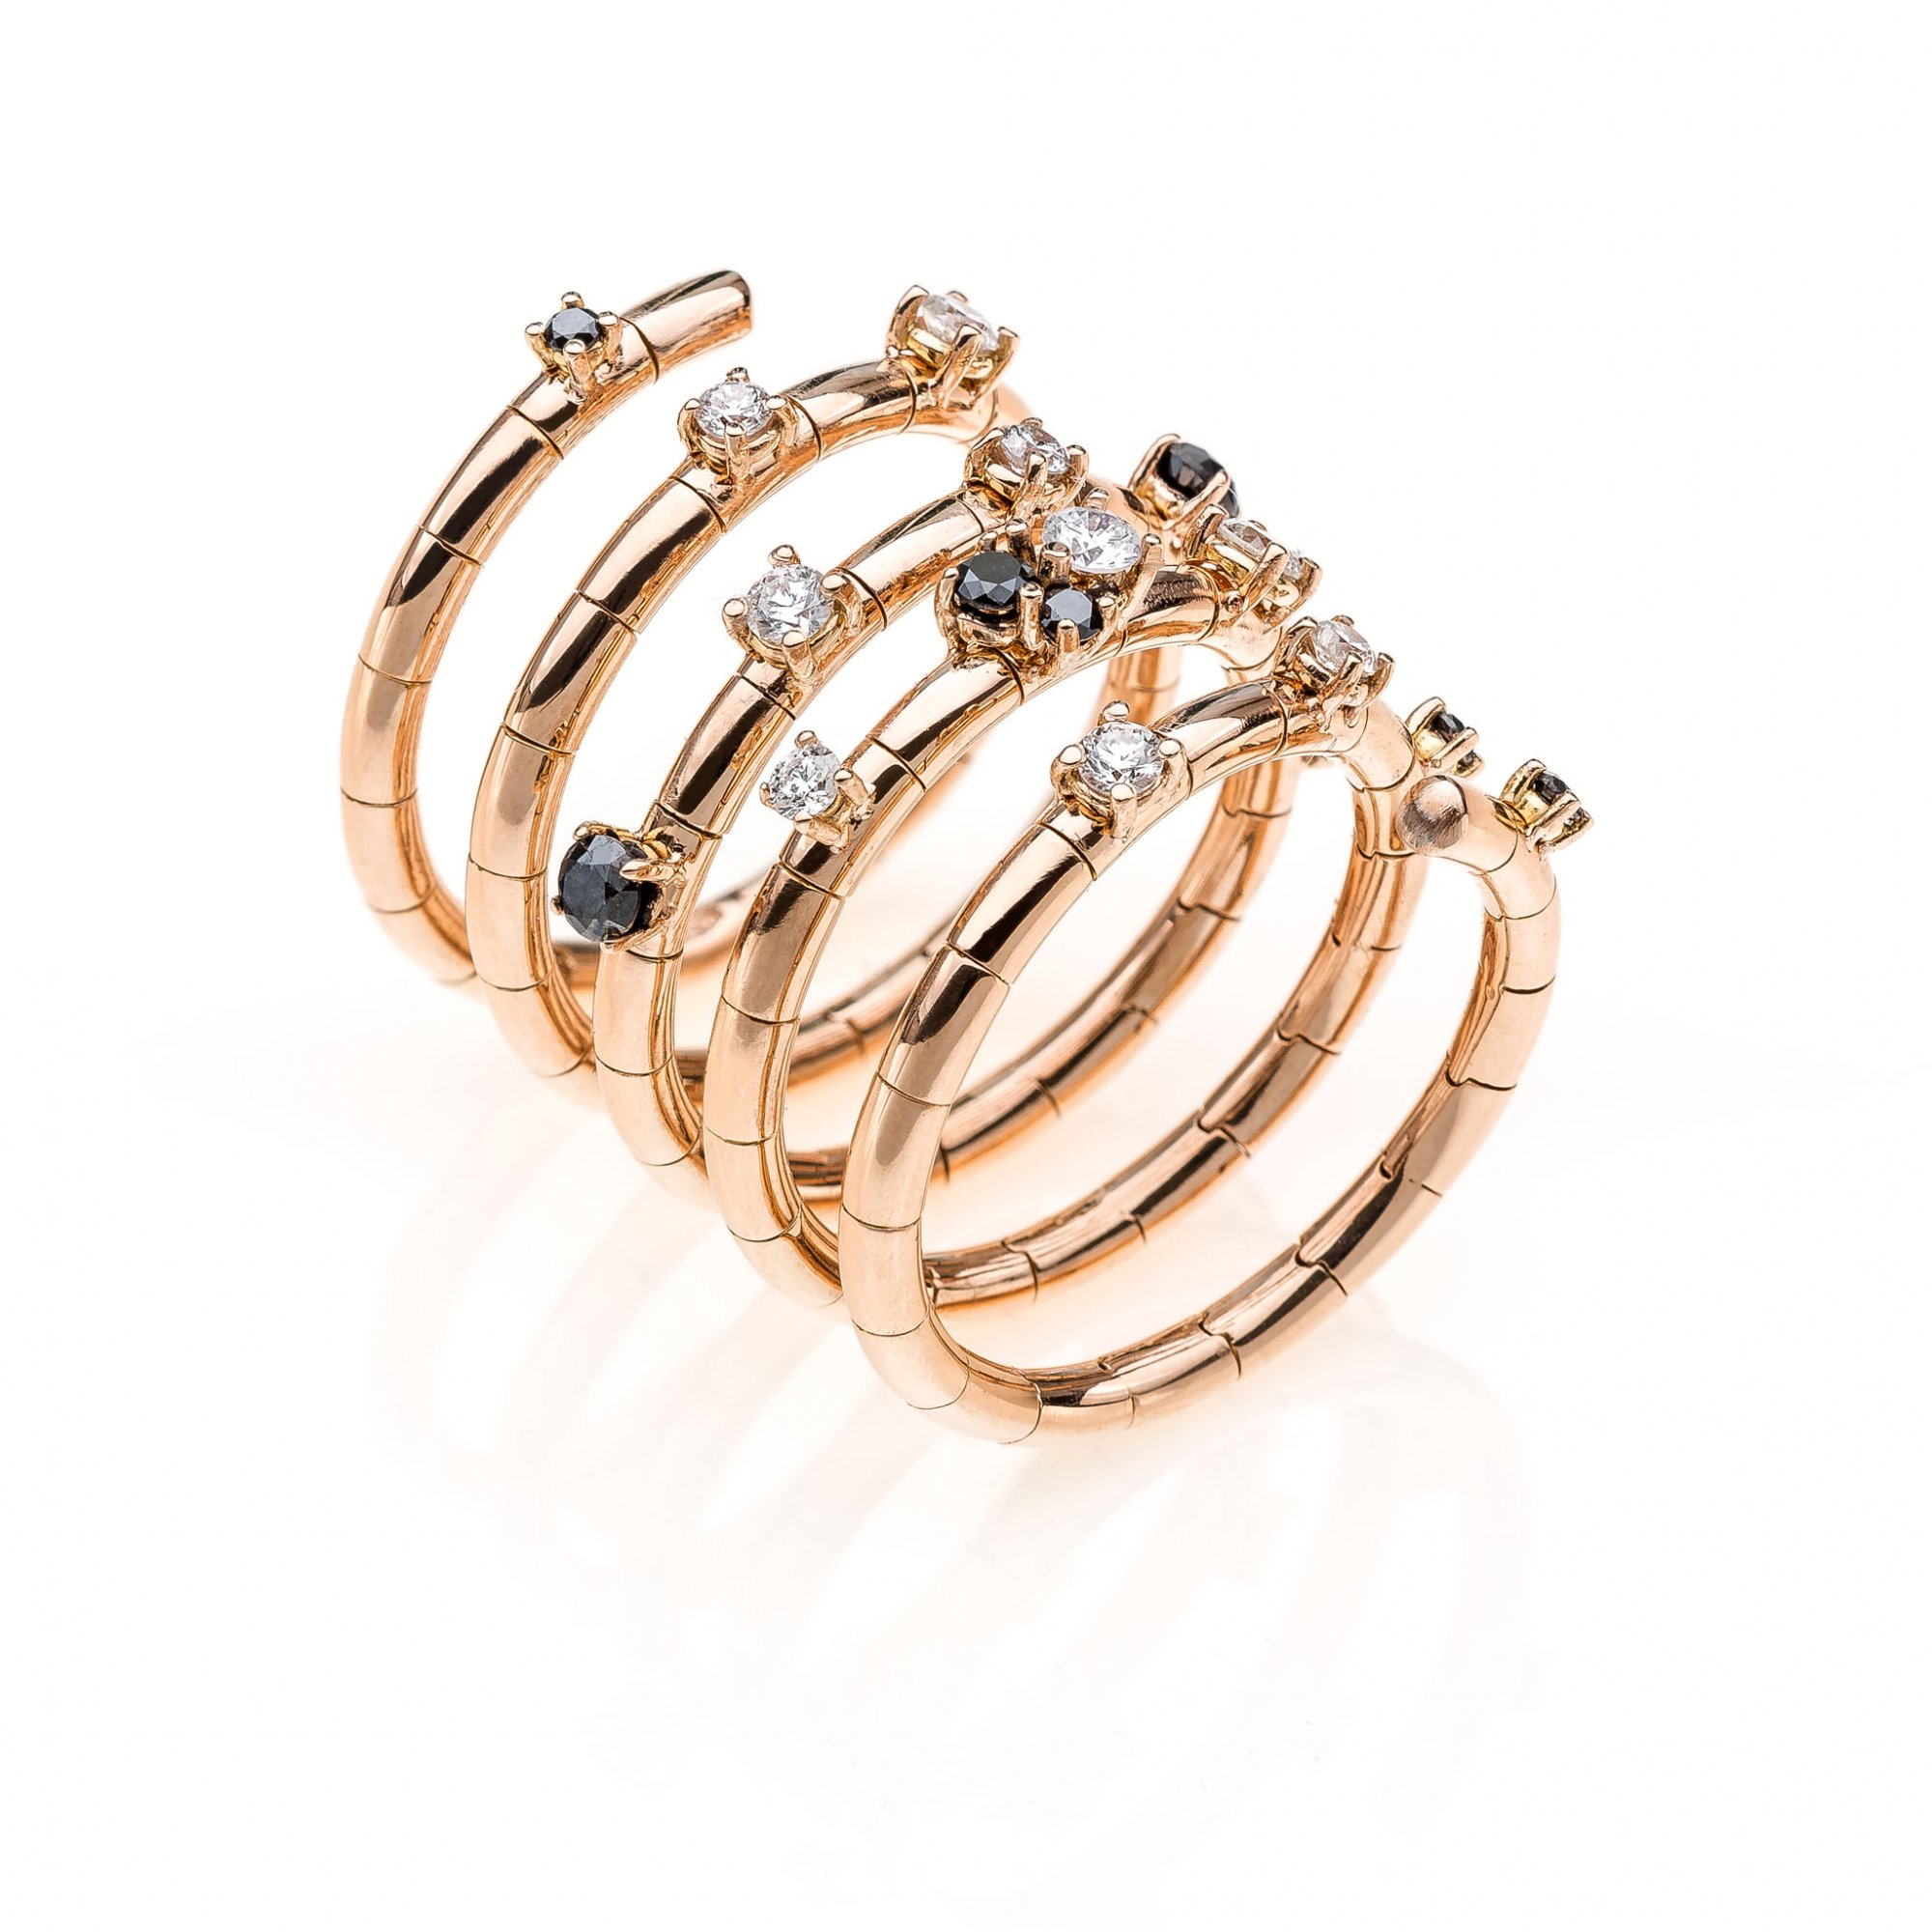 18 KT pink gold ring with round brilliant cut diamonds ct 0.45 and black diamonds ct.0.31